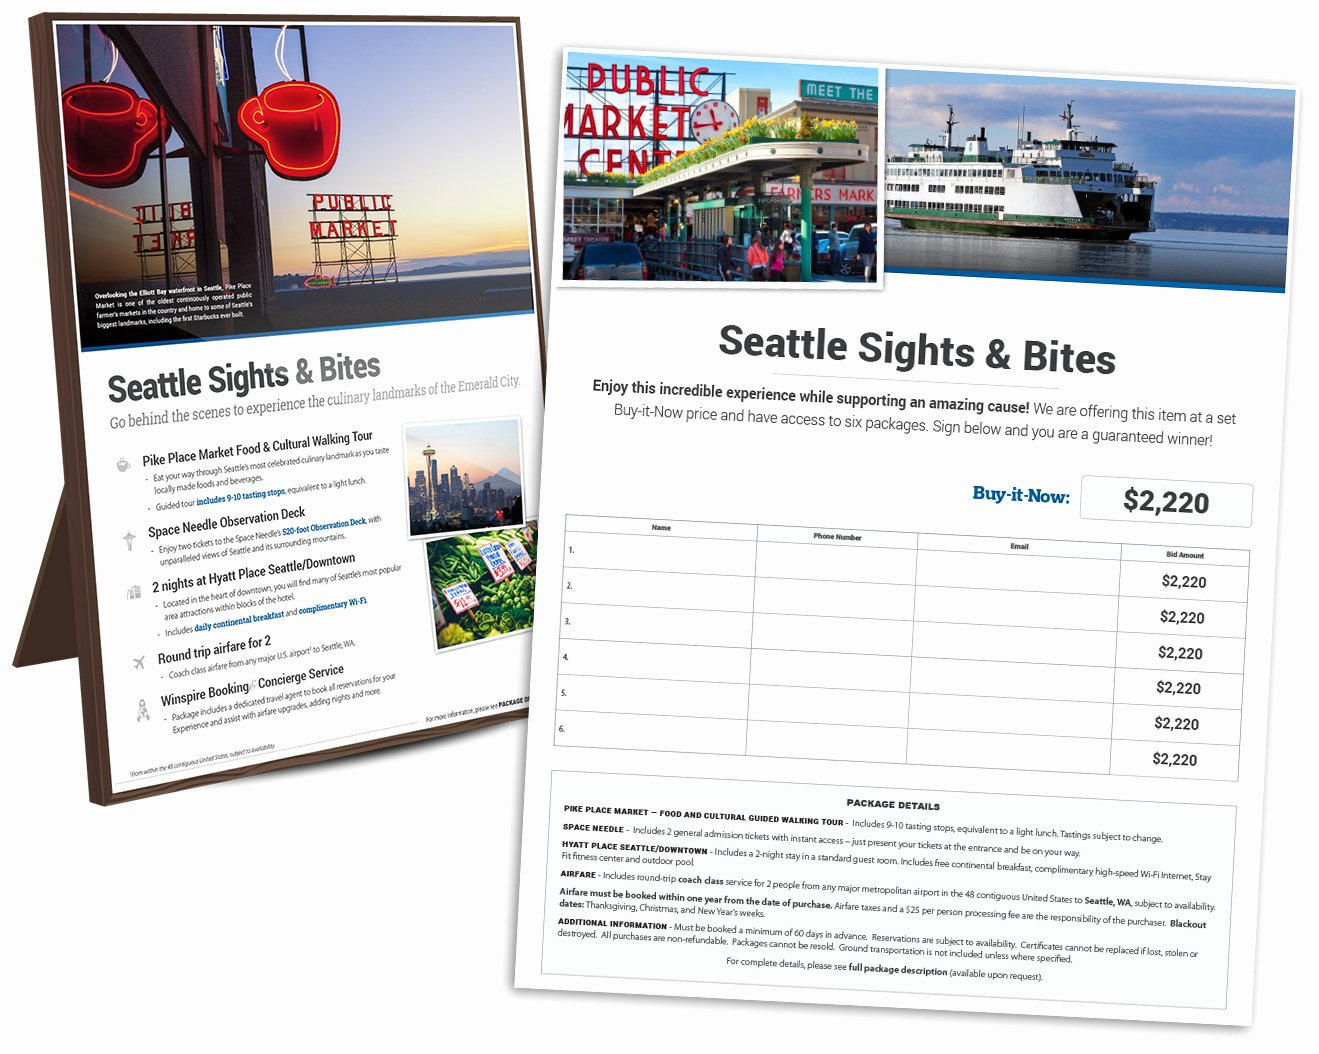 Silent Auction Item Description Template Luxury Introducing the New Winspire Silent Auction Travel Package